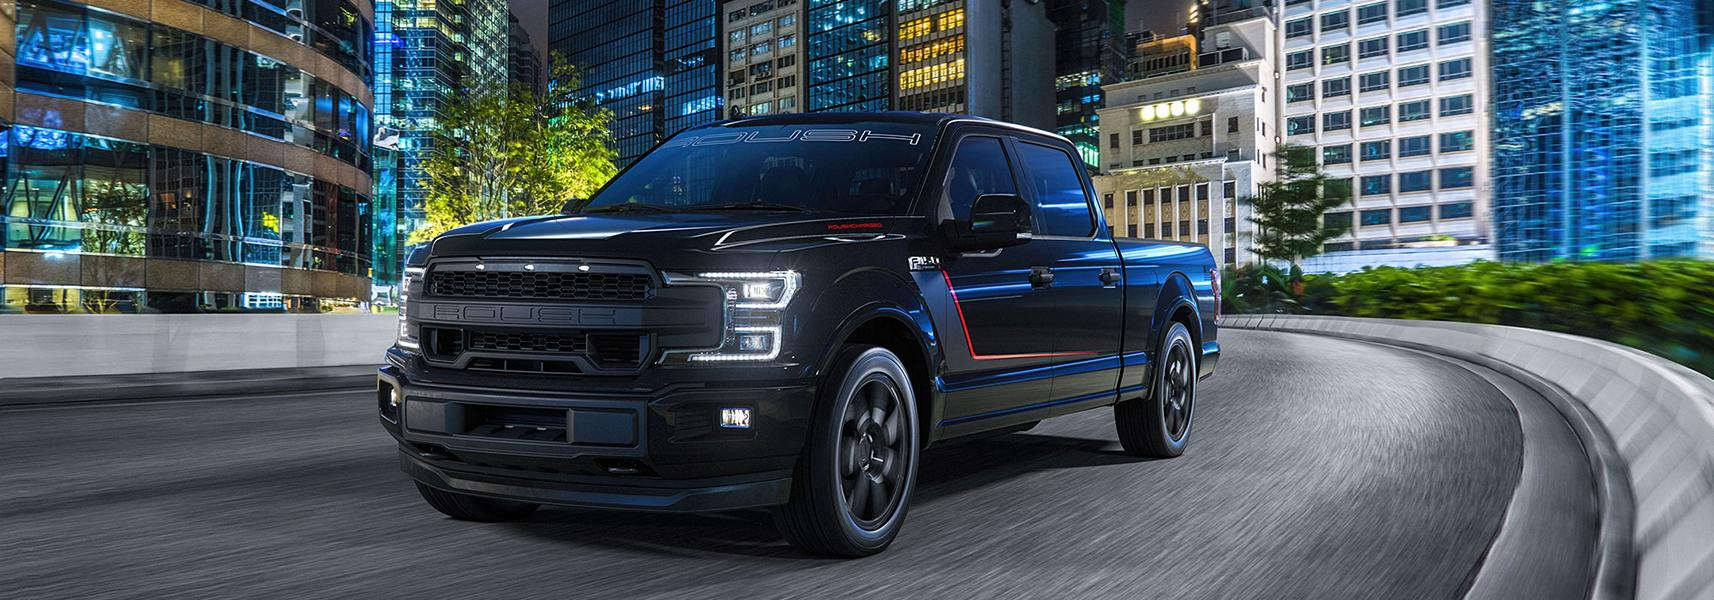 Roush F 150 NITEMARE Ford Tuning Stark: 2018 Roush Performance Ford F 150 SC Nitmare mit 650 PS